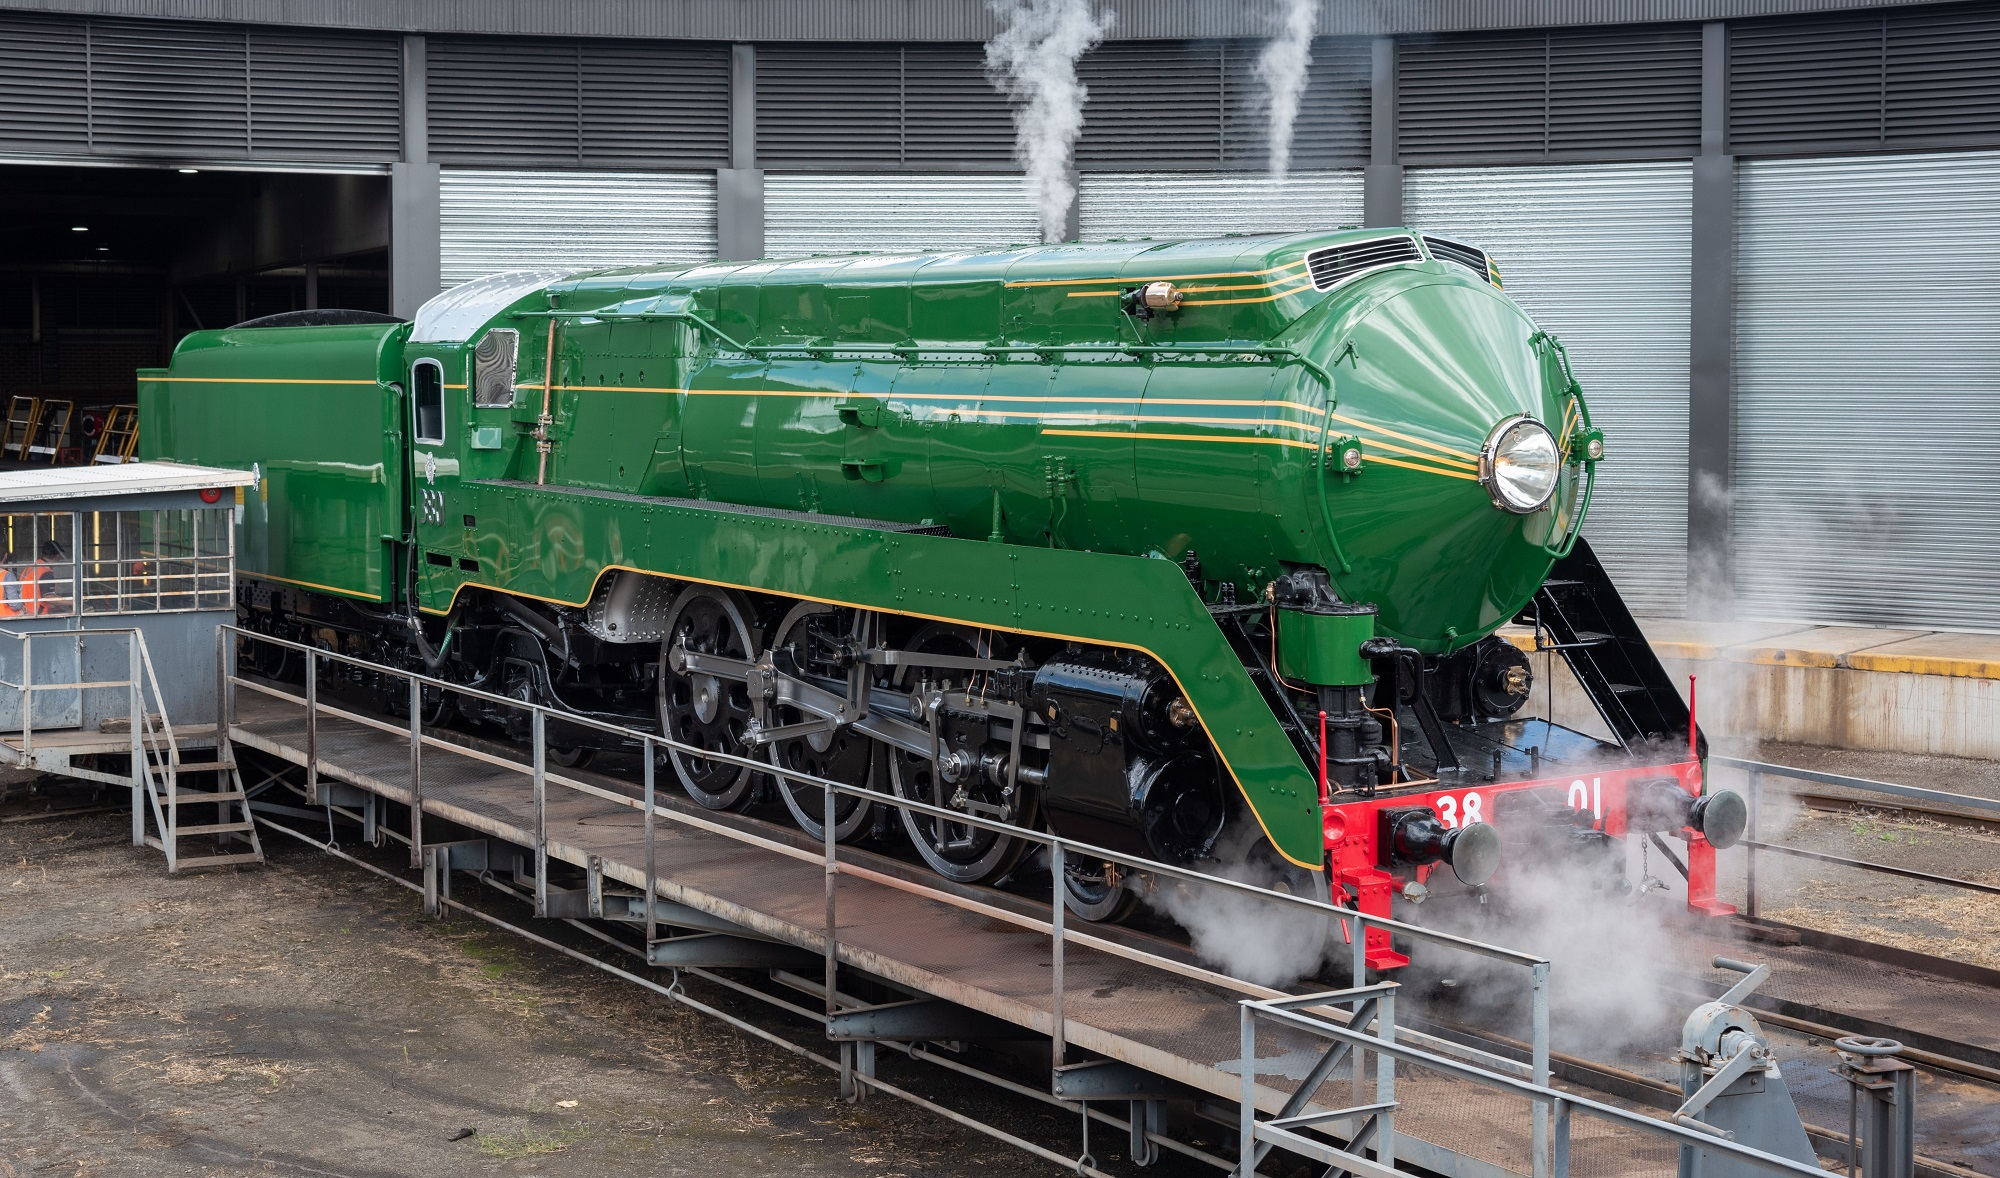 A green steam engine sits on a railway track.